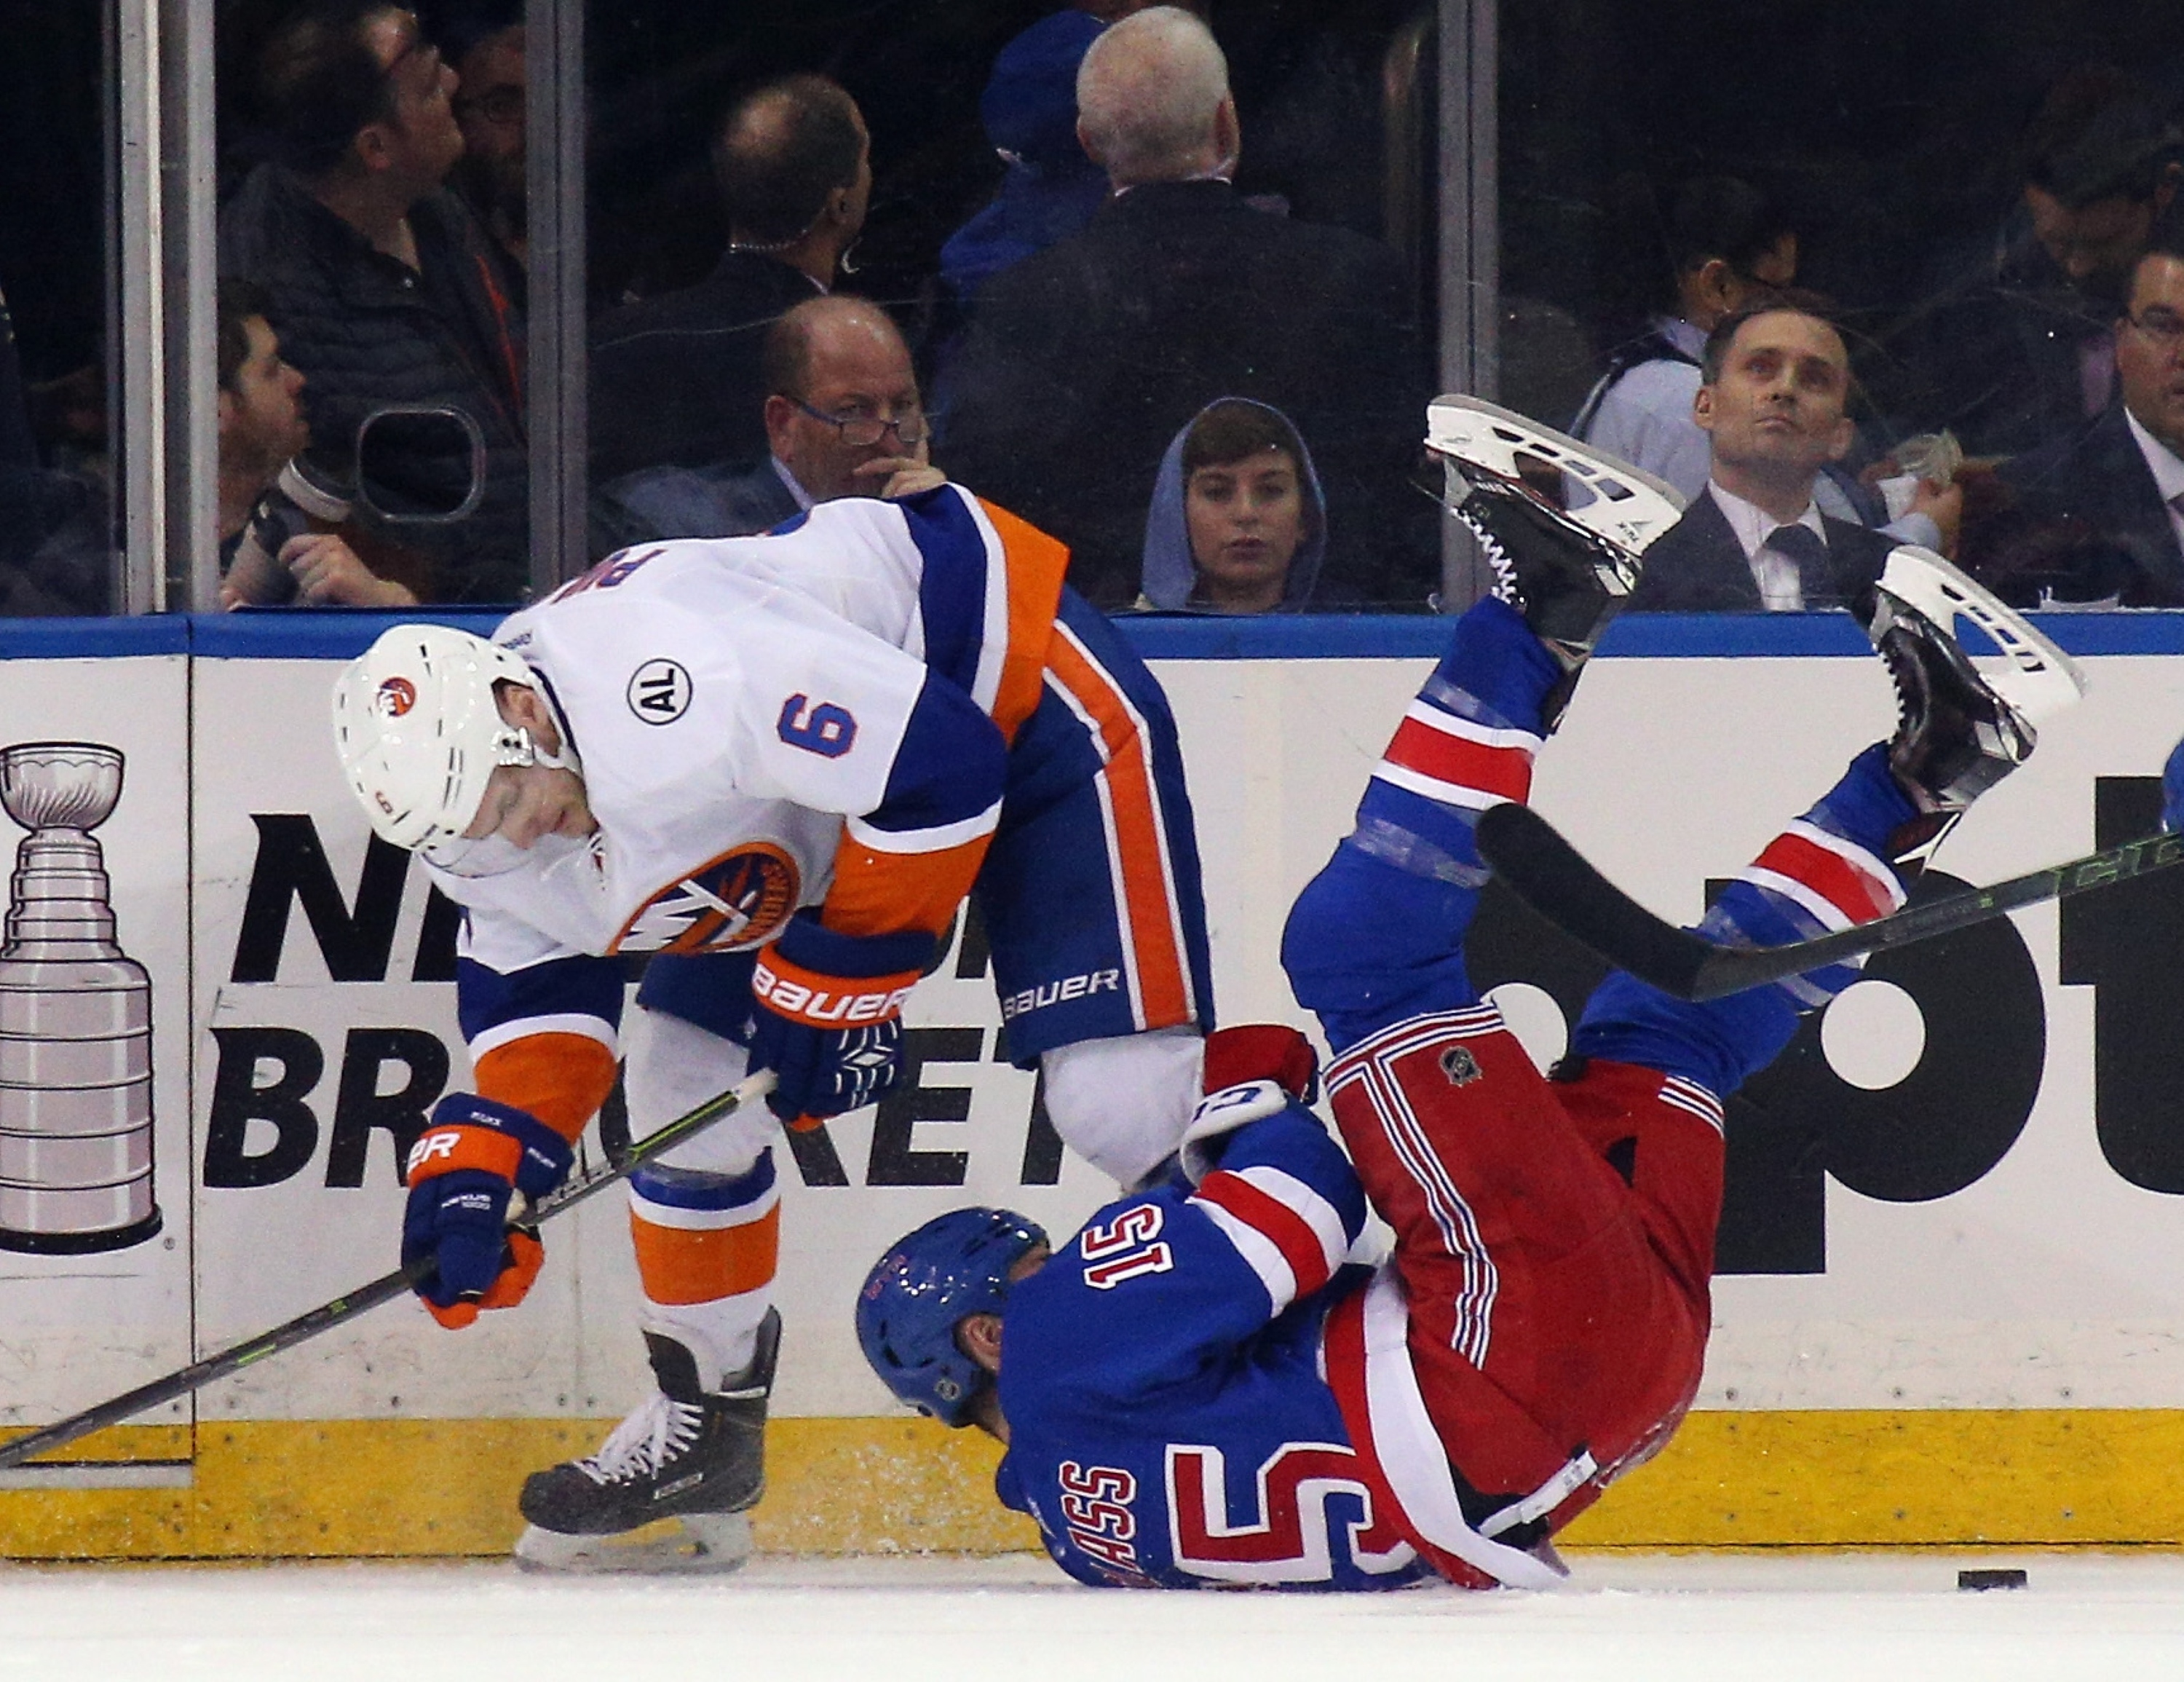 NEW YORK, NY - APRIL 07: Ryan Pulock #6 of the New York Islanders and Tanner Glass #15 of the New York Rangers collide during the third period at Madison Square Garden on April 7, 2016 in New York City. The Islanders defeated the Rangers 4-1. (Photo by Bruce Bennett/Getty Images)